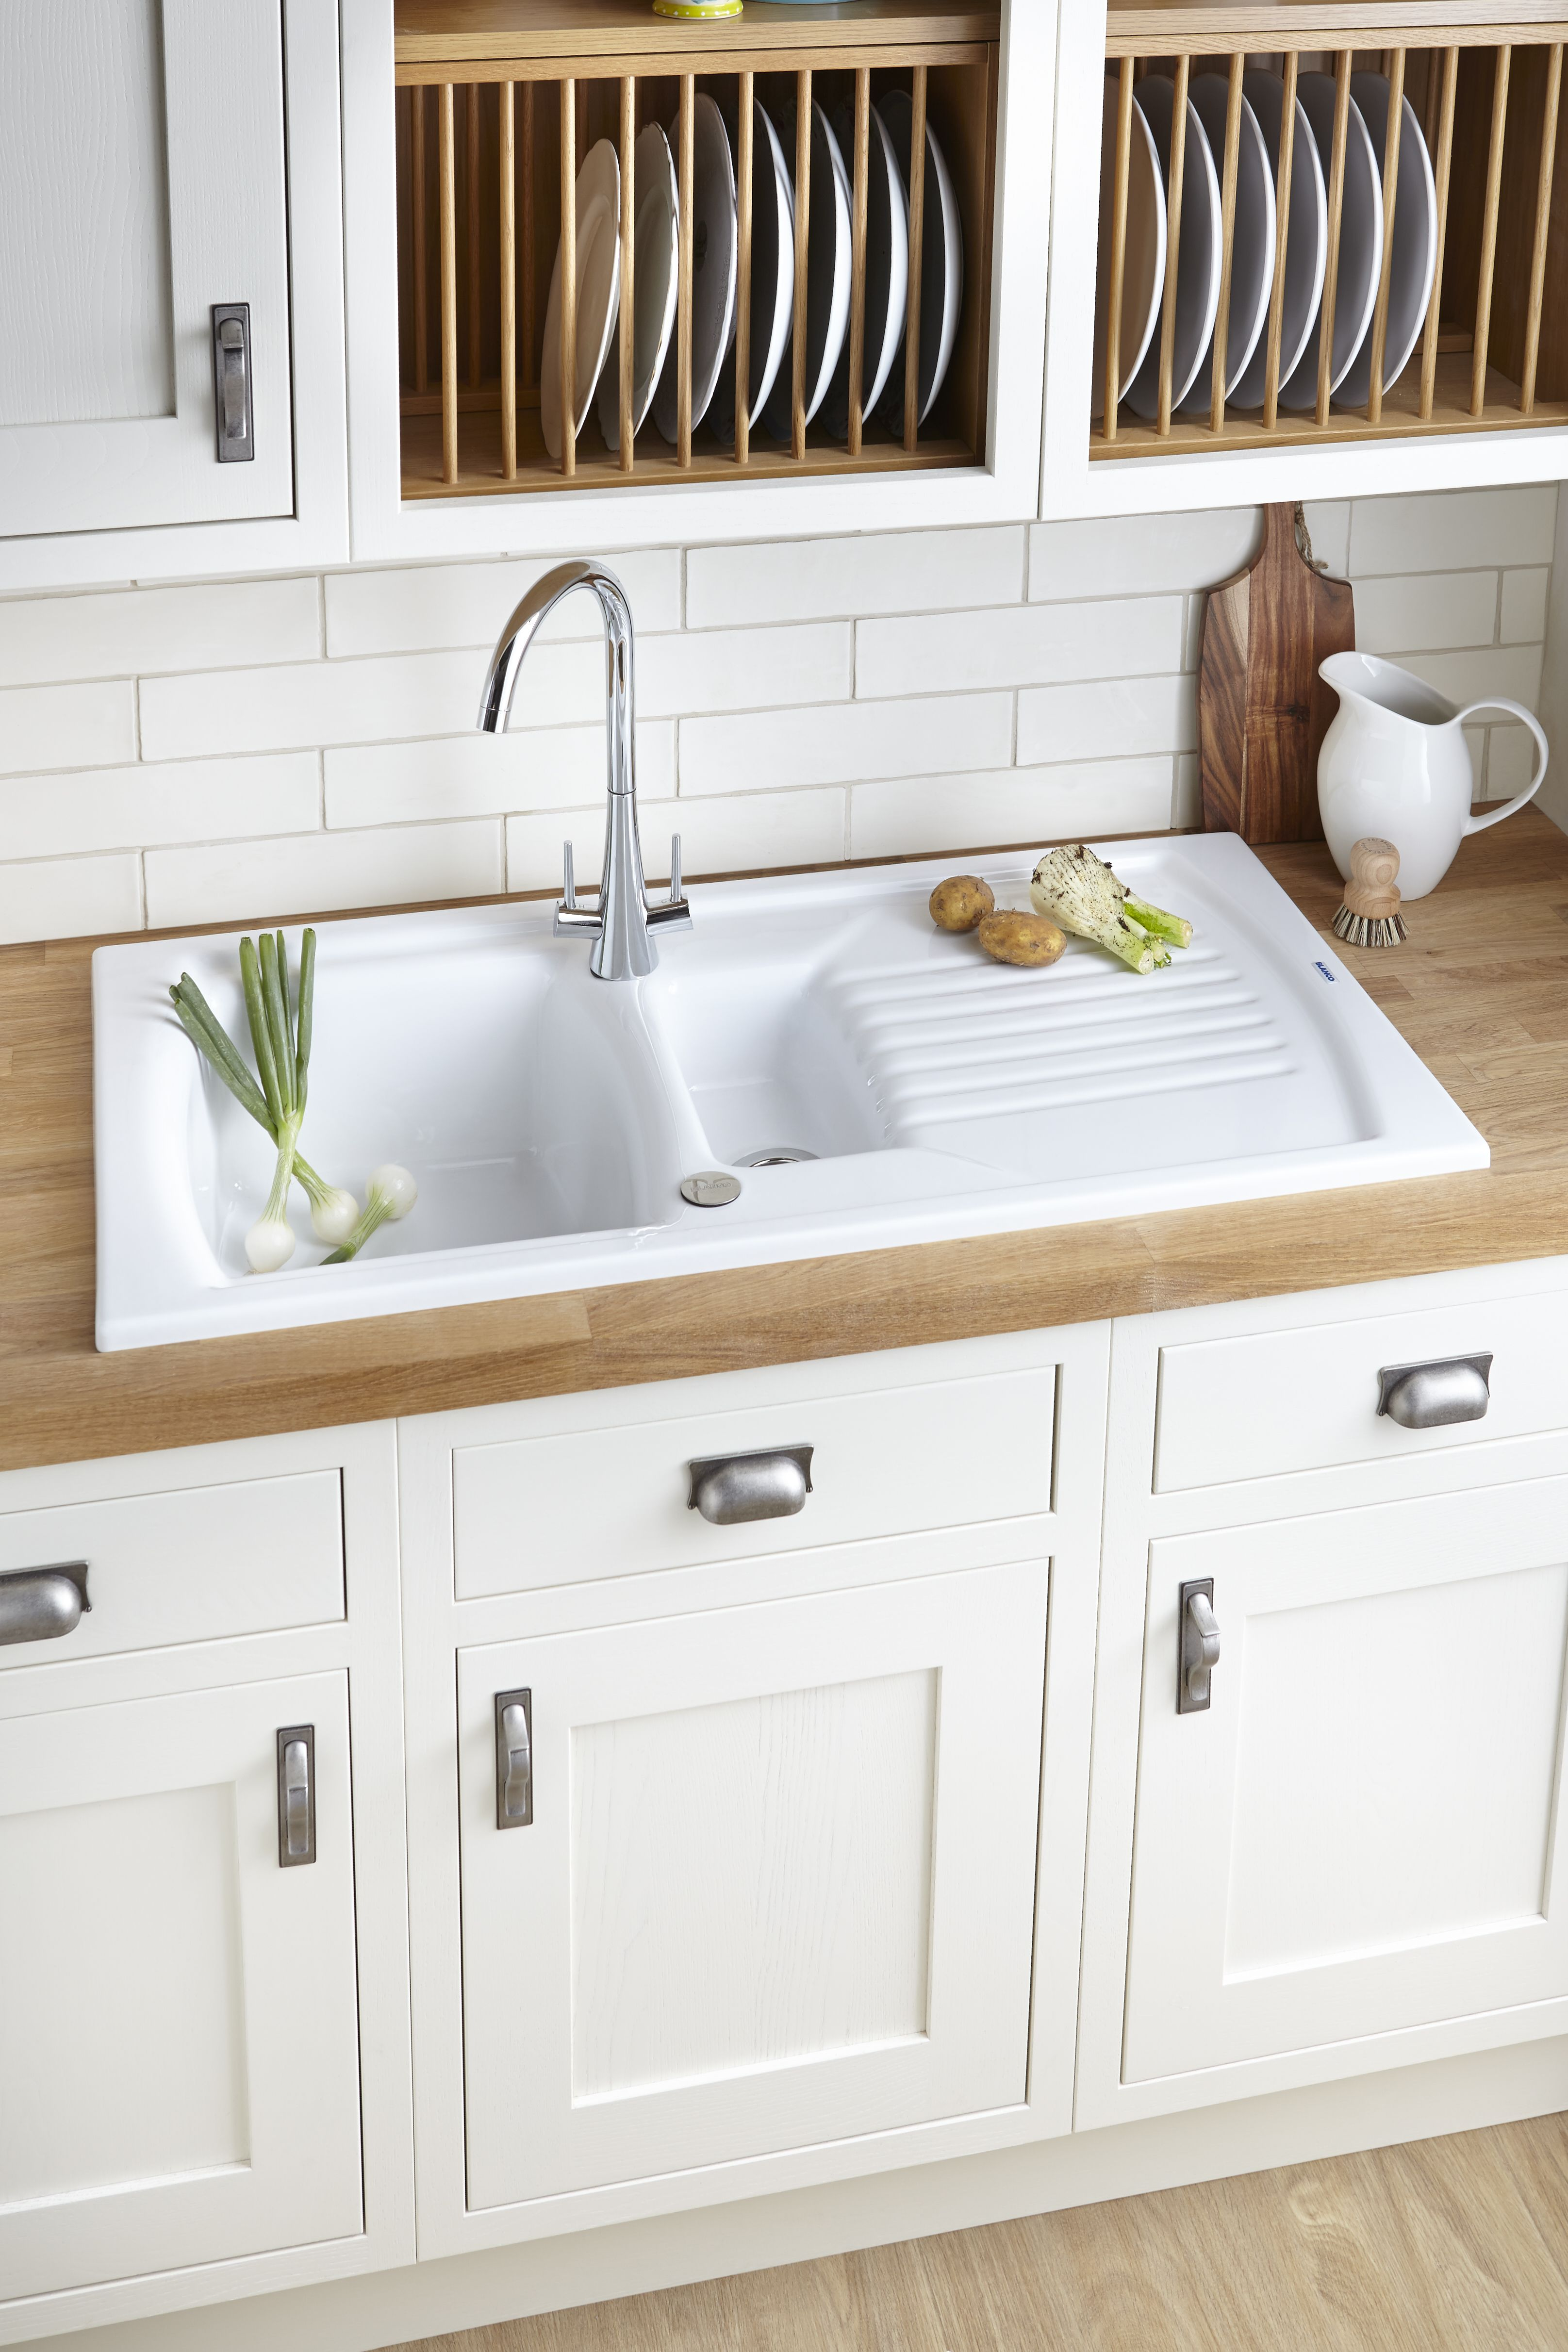 What Is The Best Material For Kitchen Sinks - House Designer Today •